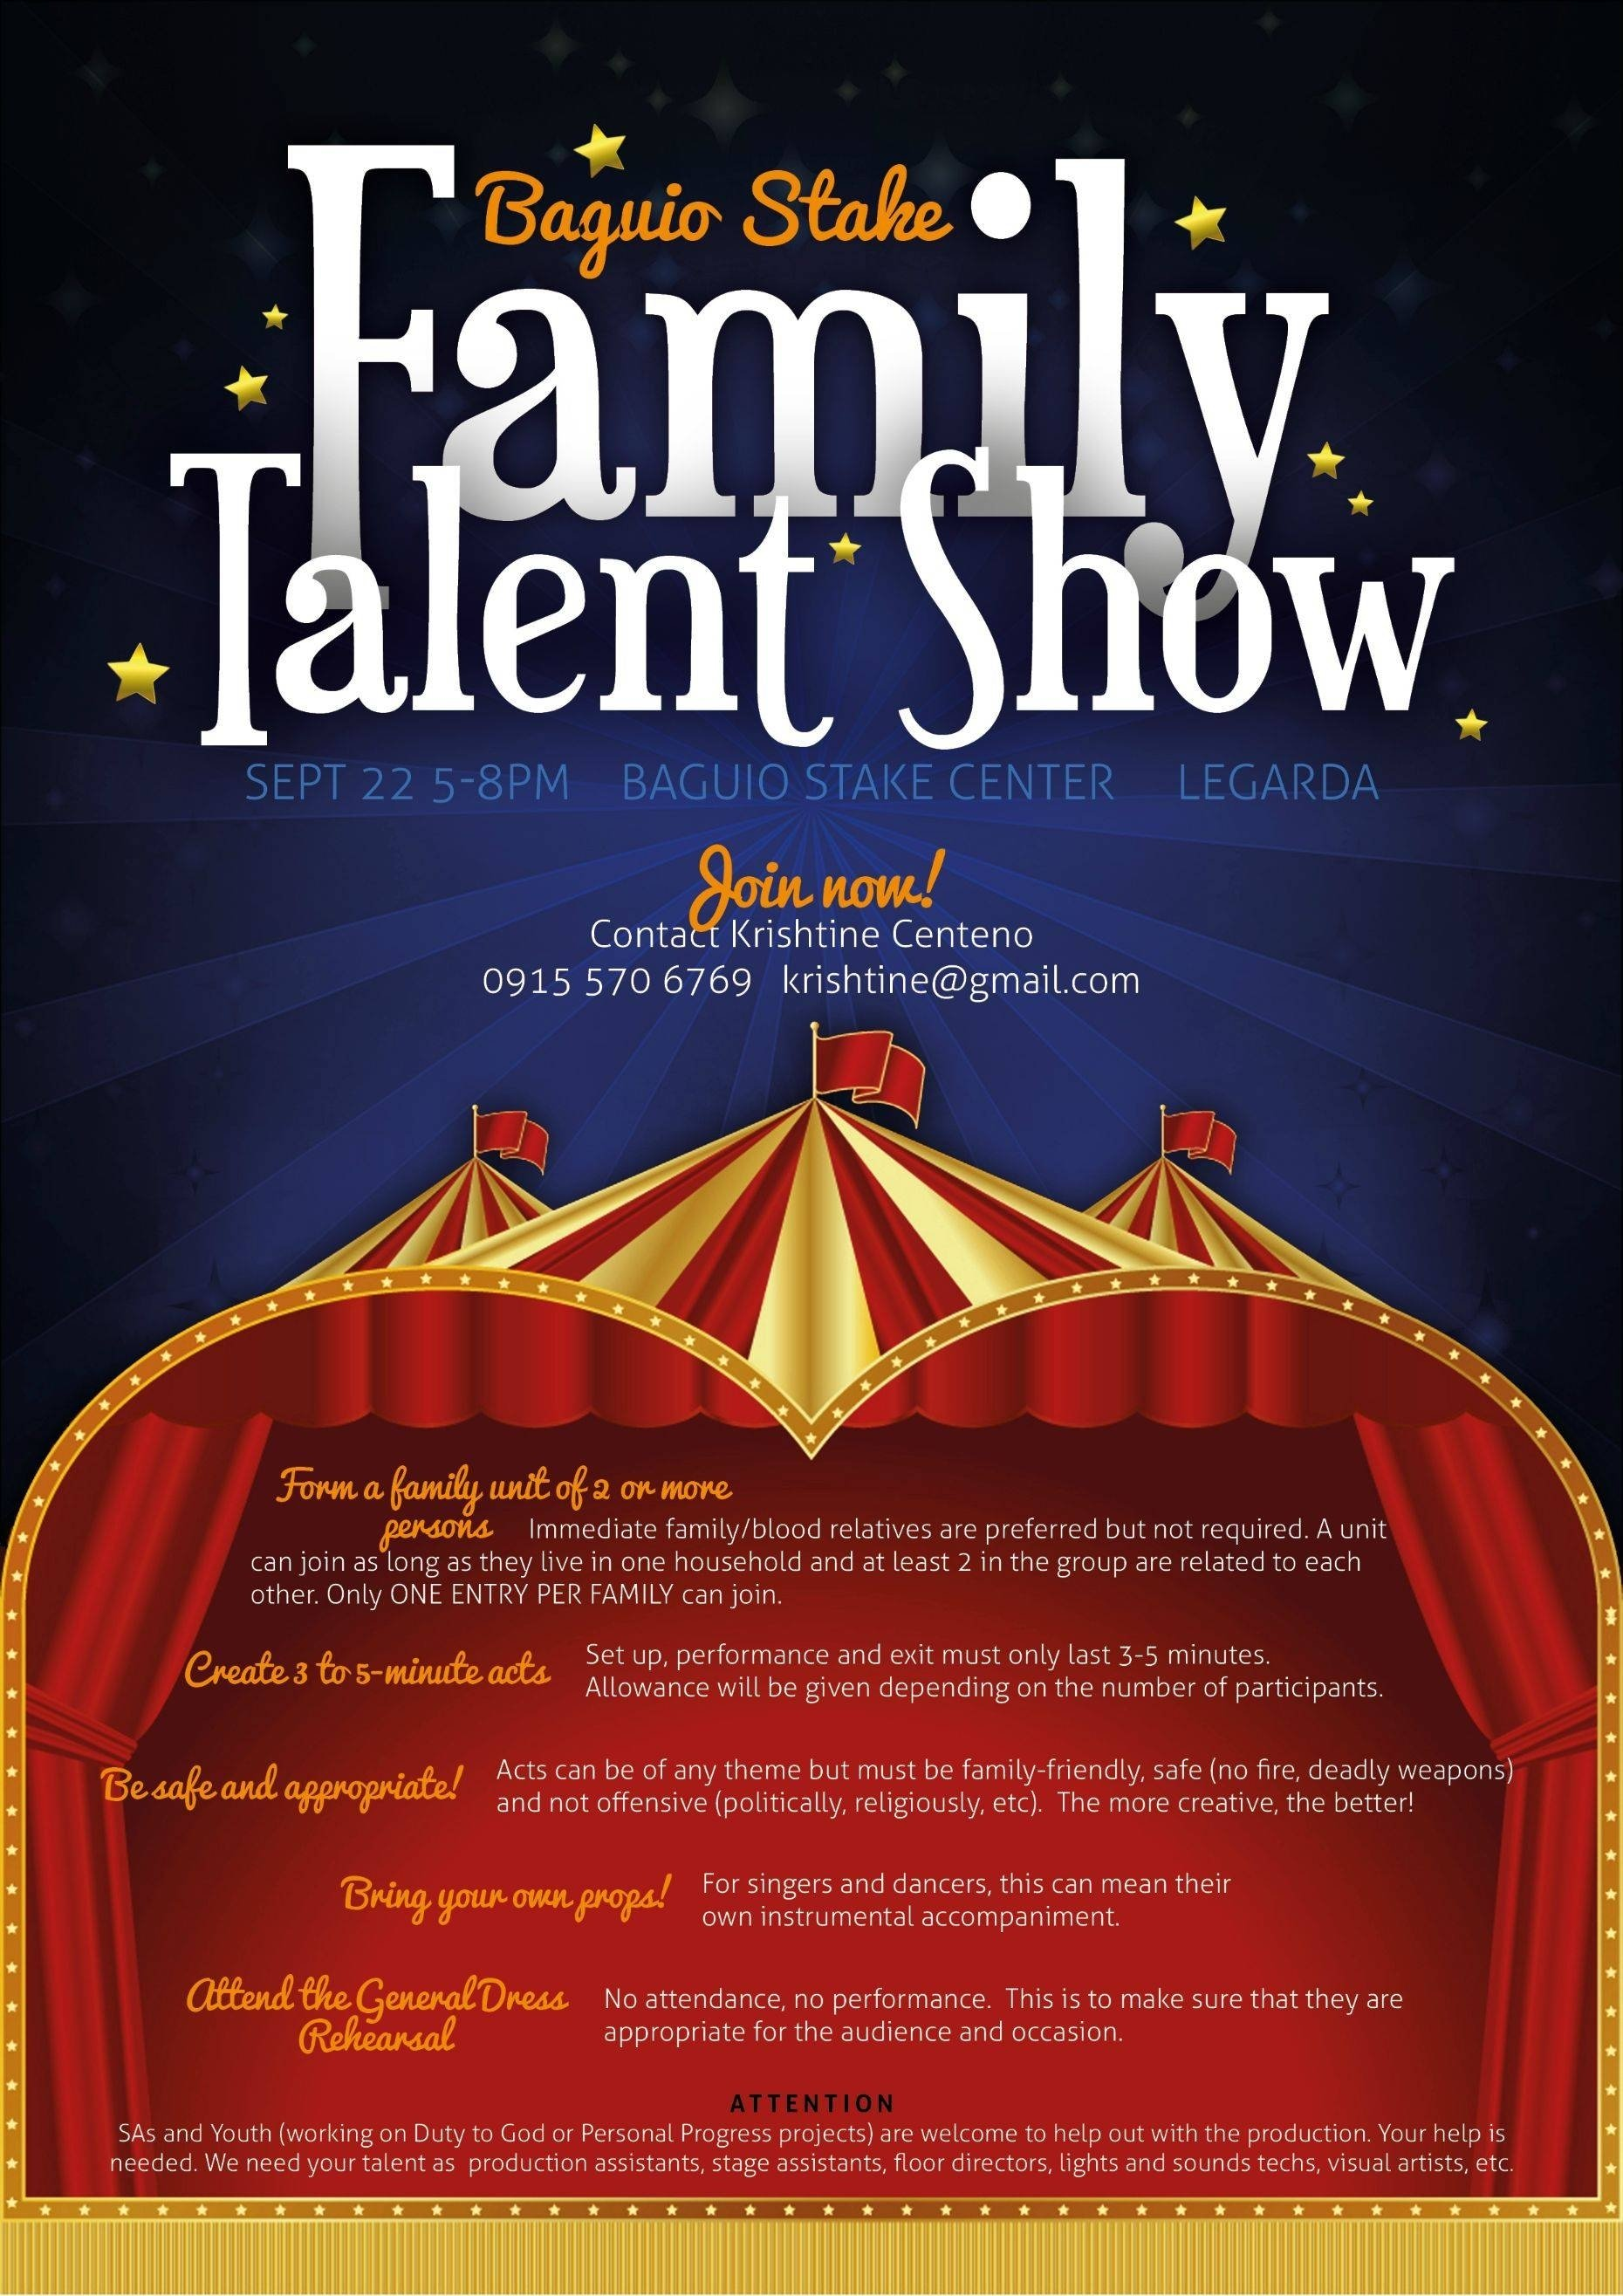 10 Beautiful Family Reunion Talent Show Ideas the most awesome images on the internet adobe indesign adobe 2020